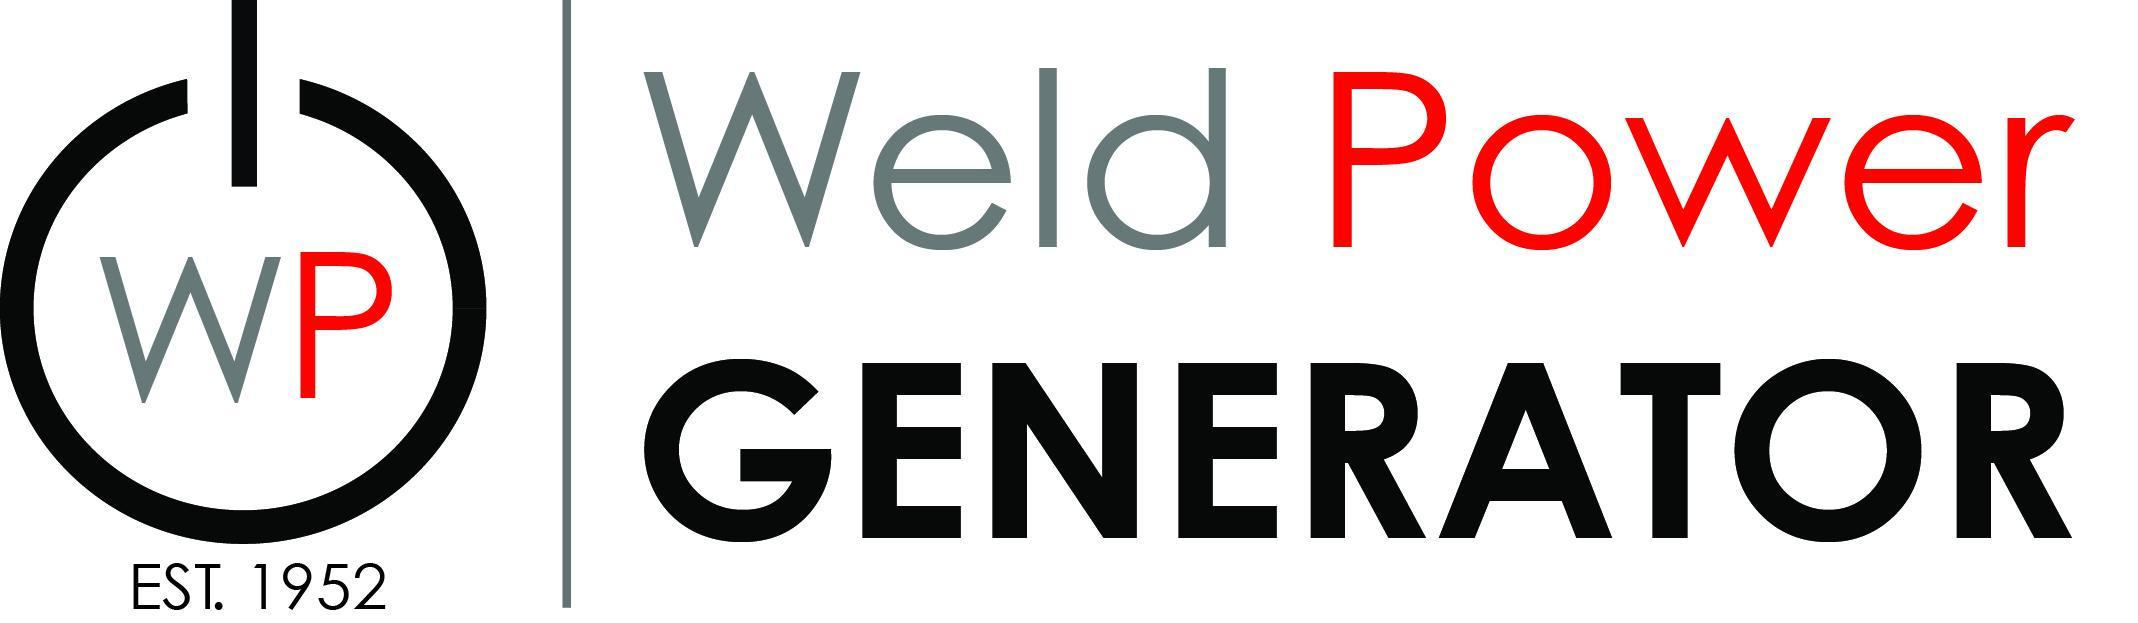 weld power service